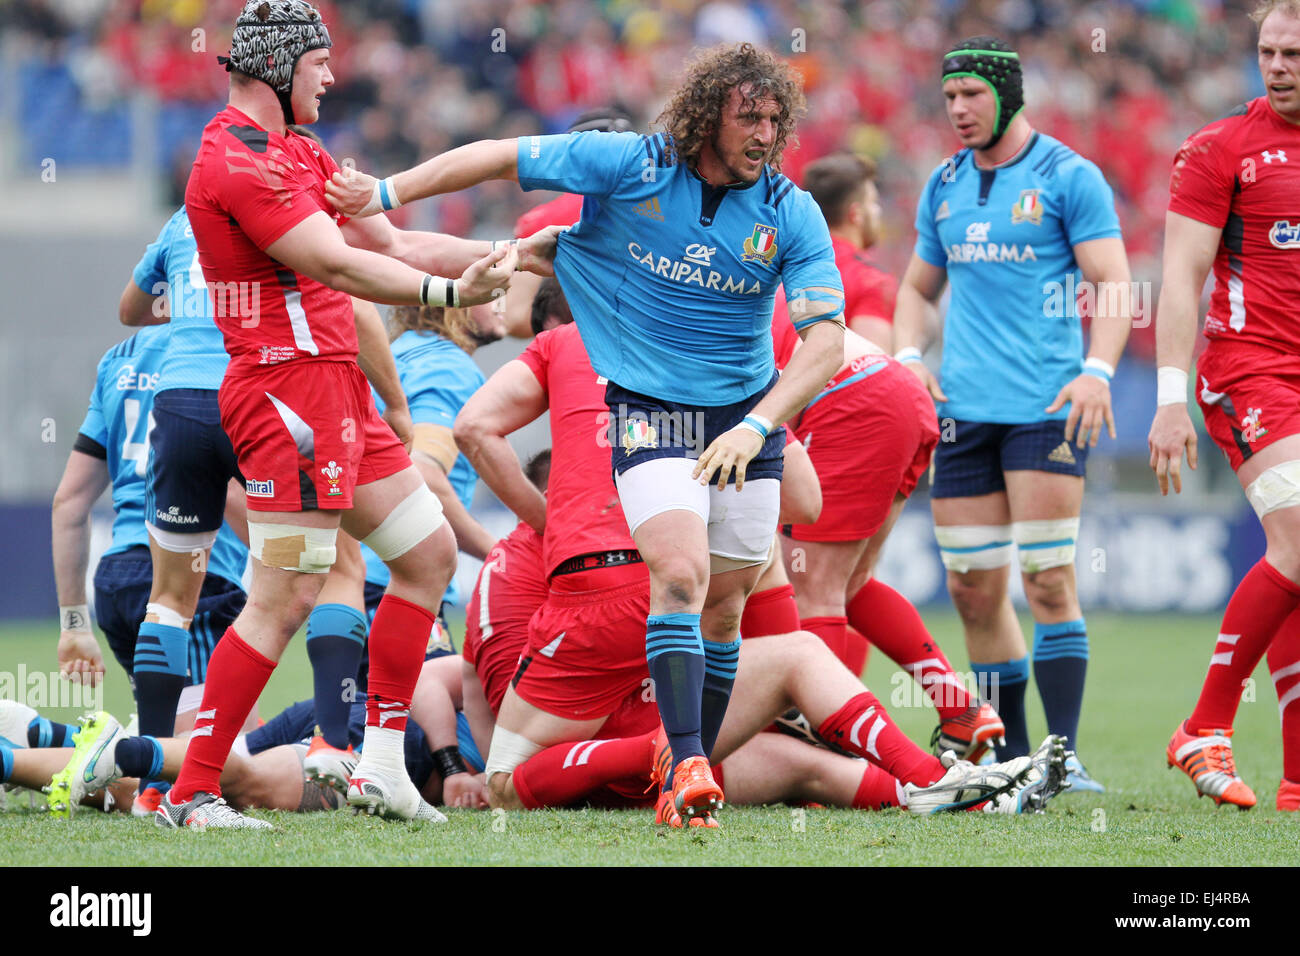 Rome, Italy. 21st March, 2015. Mauro Bergamasco (Italy) reacts during the Six Nations international rugby union - Stock Image